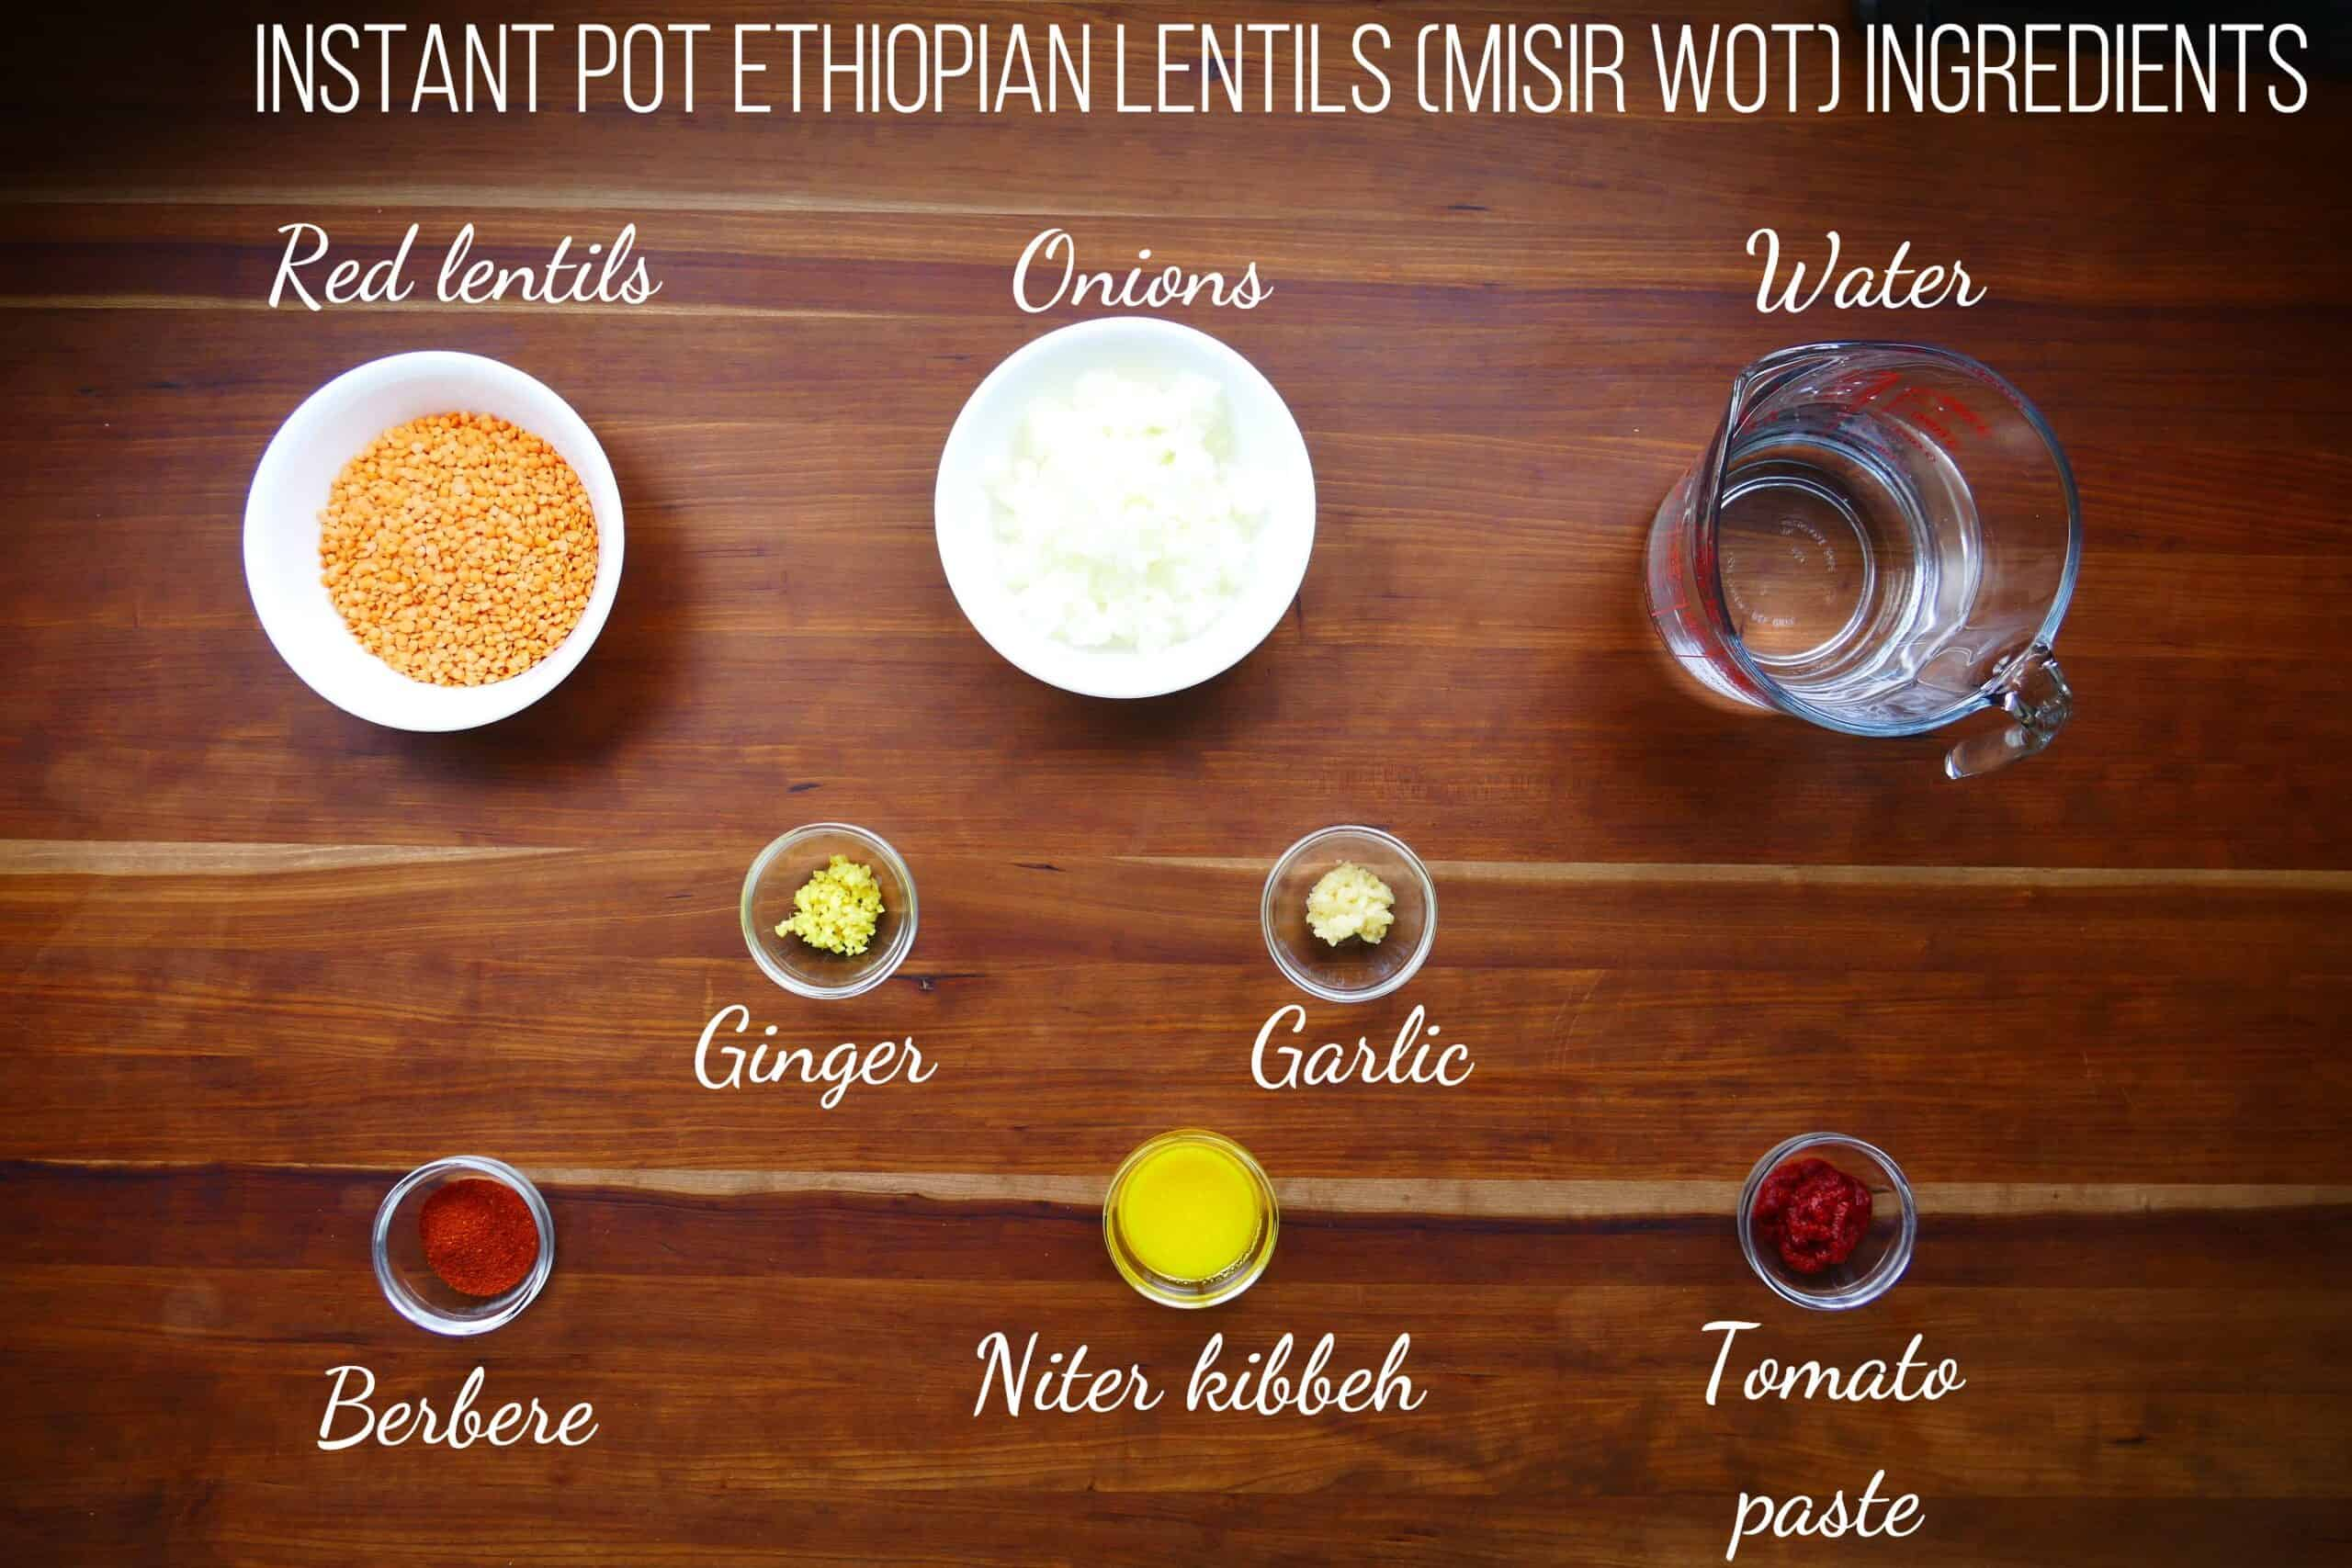 Instant Pot Misir Wot Ingredients - red lentils, onions, water, ginger, garlic, berbere, niter kibbeh, tomato paste